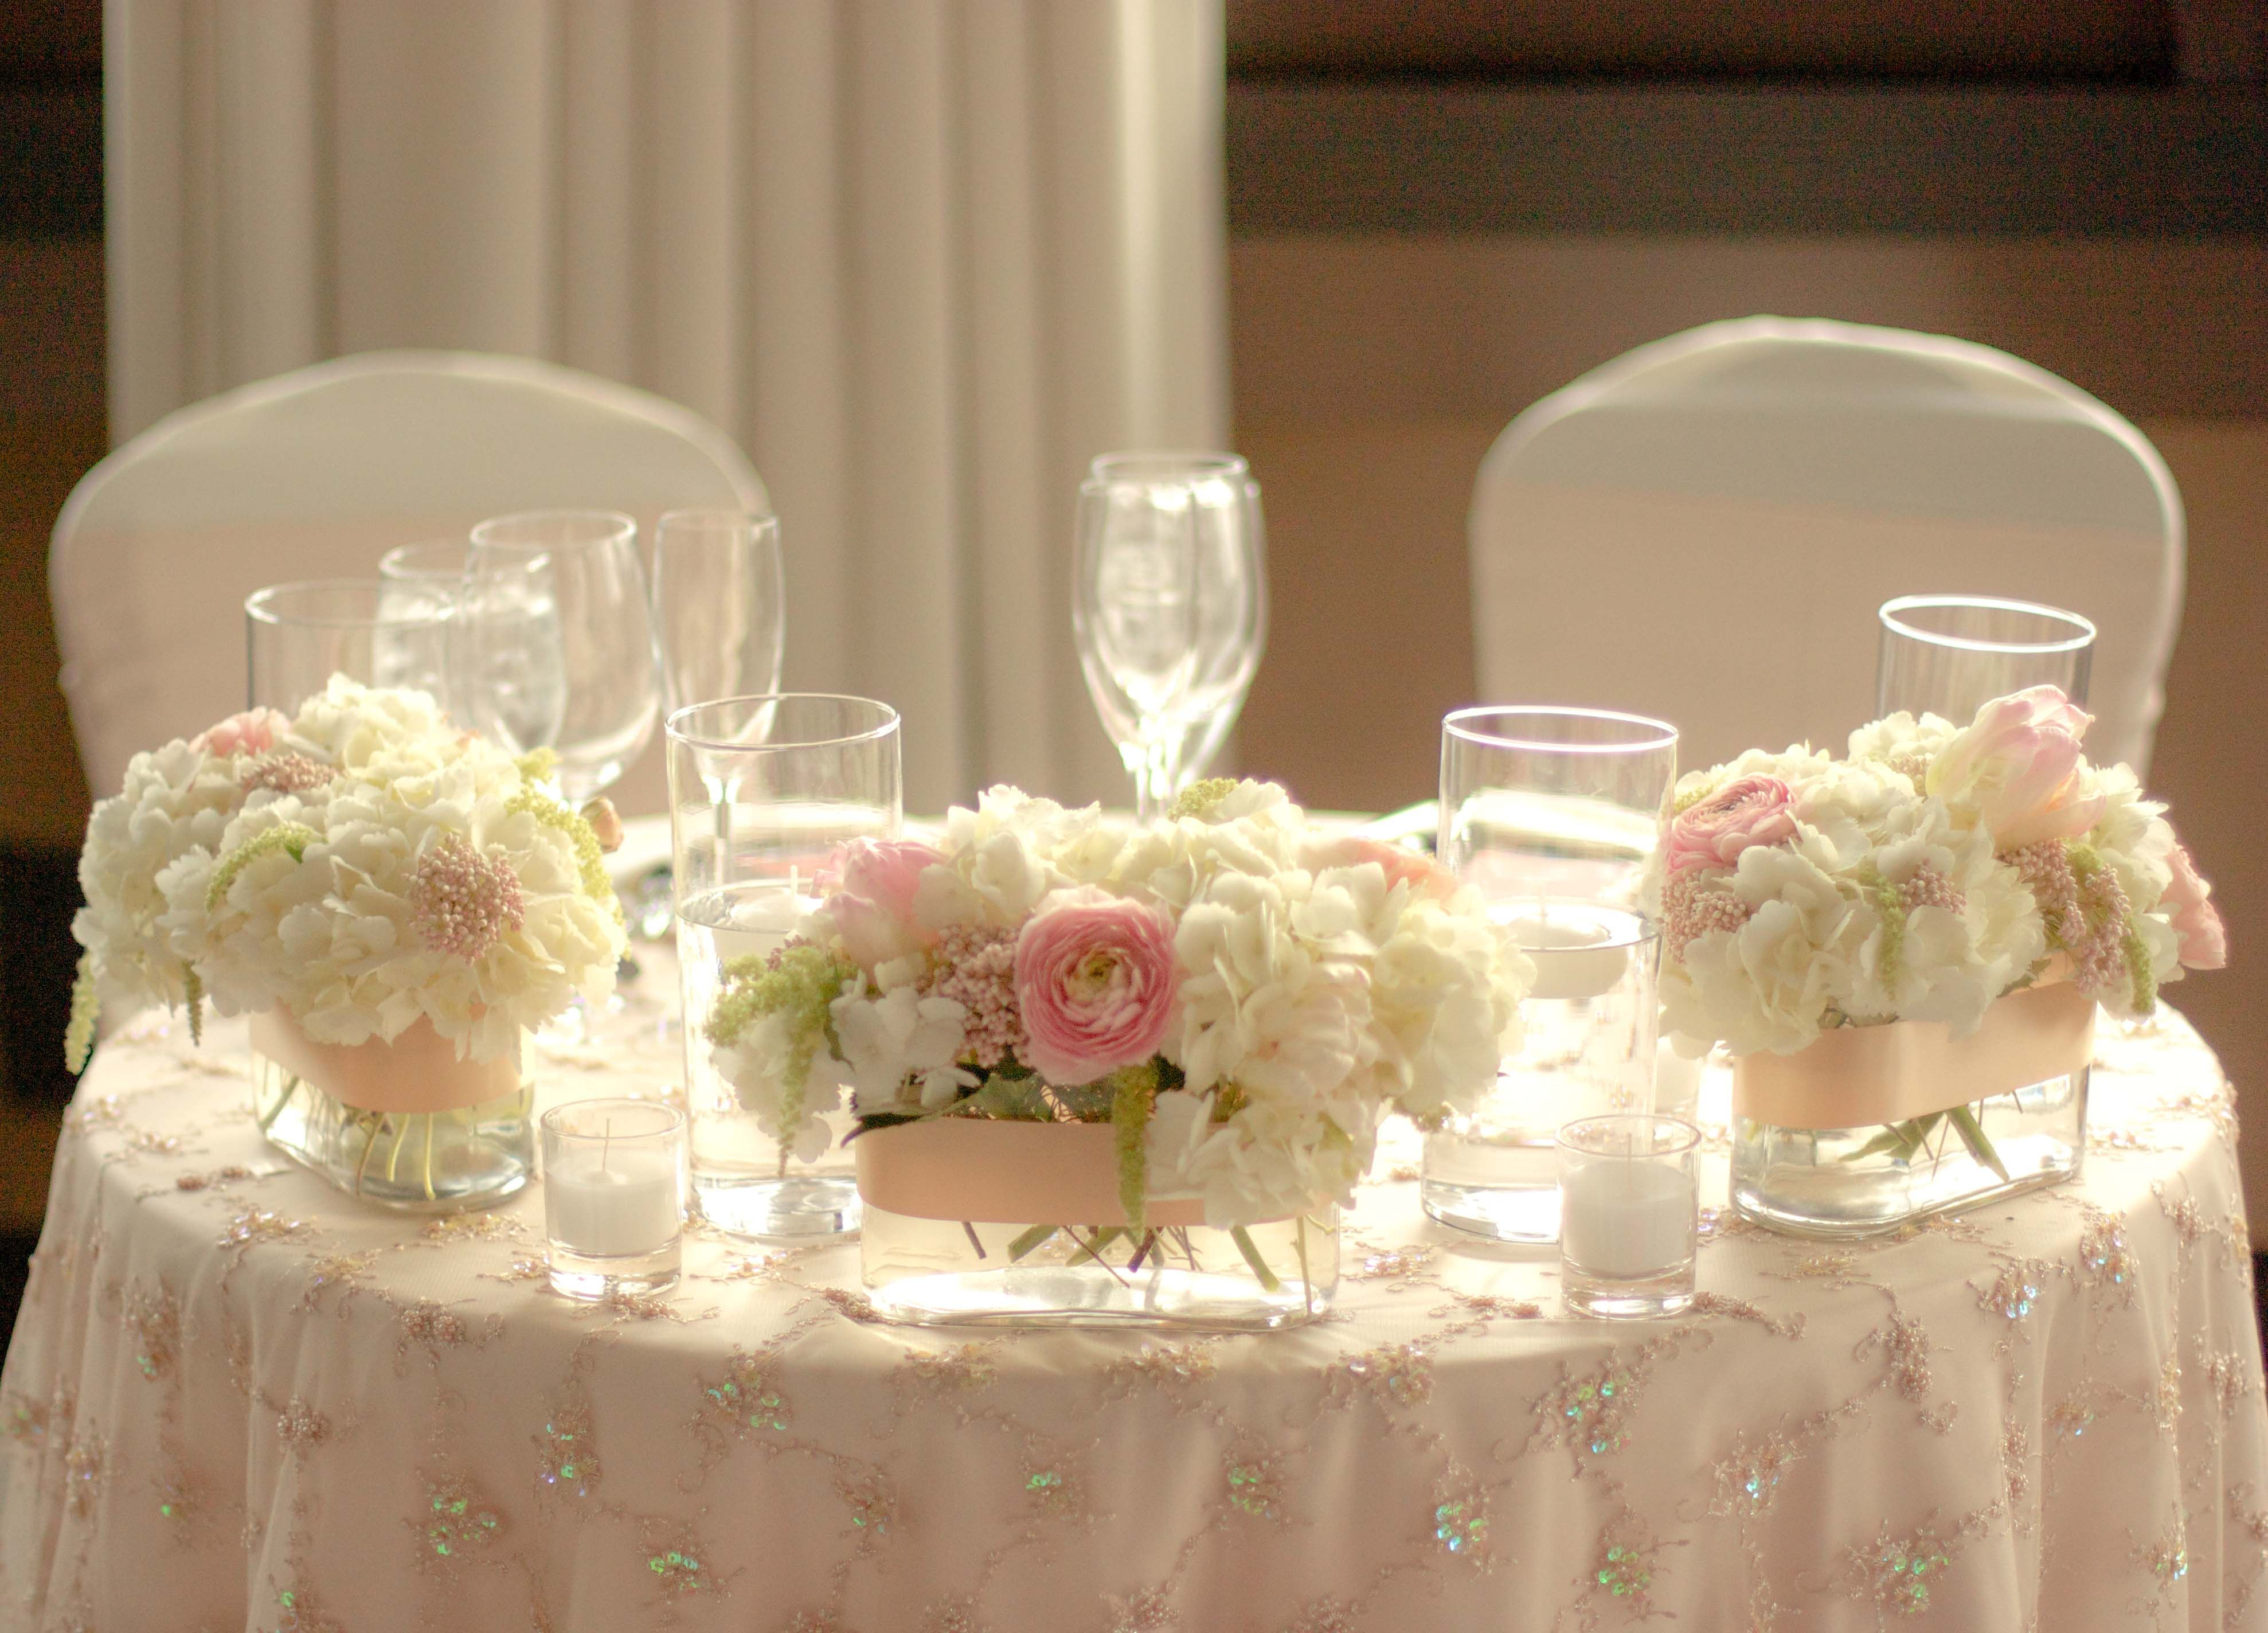 pinterest wedding table decorations candles%0A alice brans posted Elegant Sweetheart Table to their wedding ideas  postboard via the Juxtapost bookmarklet